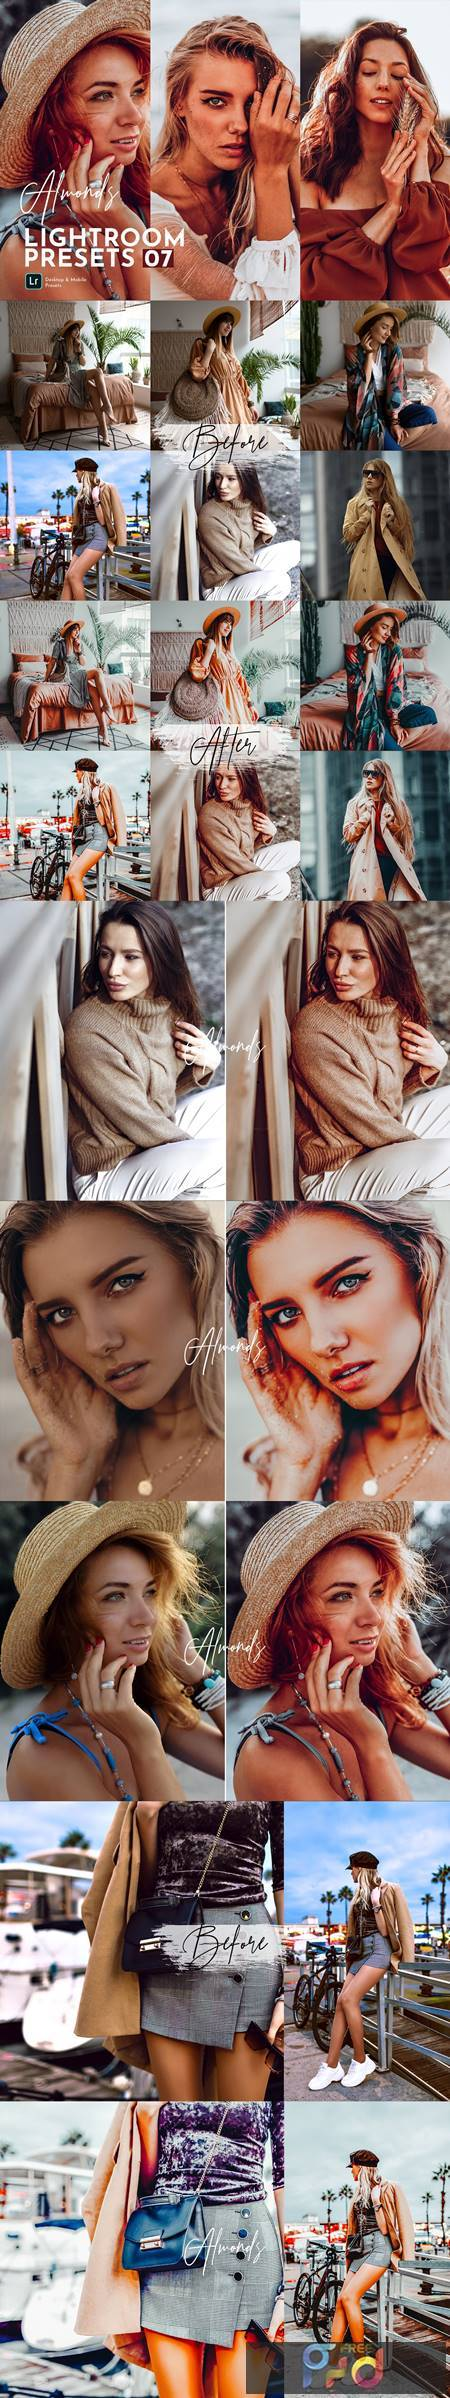 Almonds Lightroom Presets Pack 5471241 1